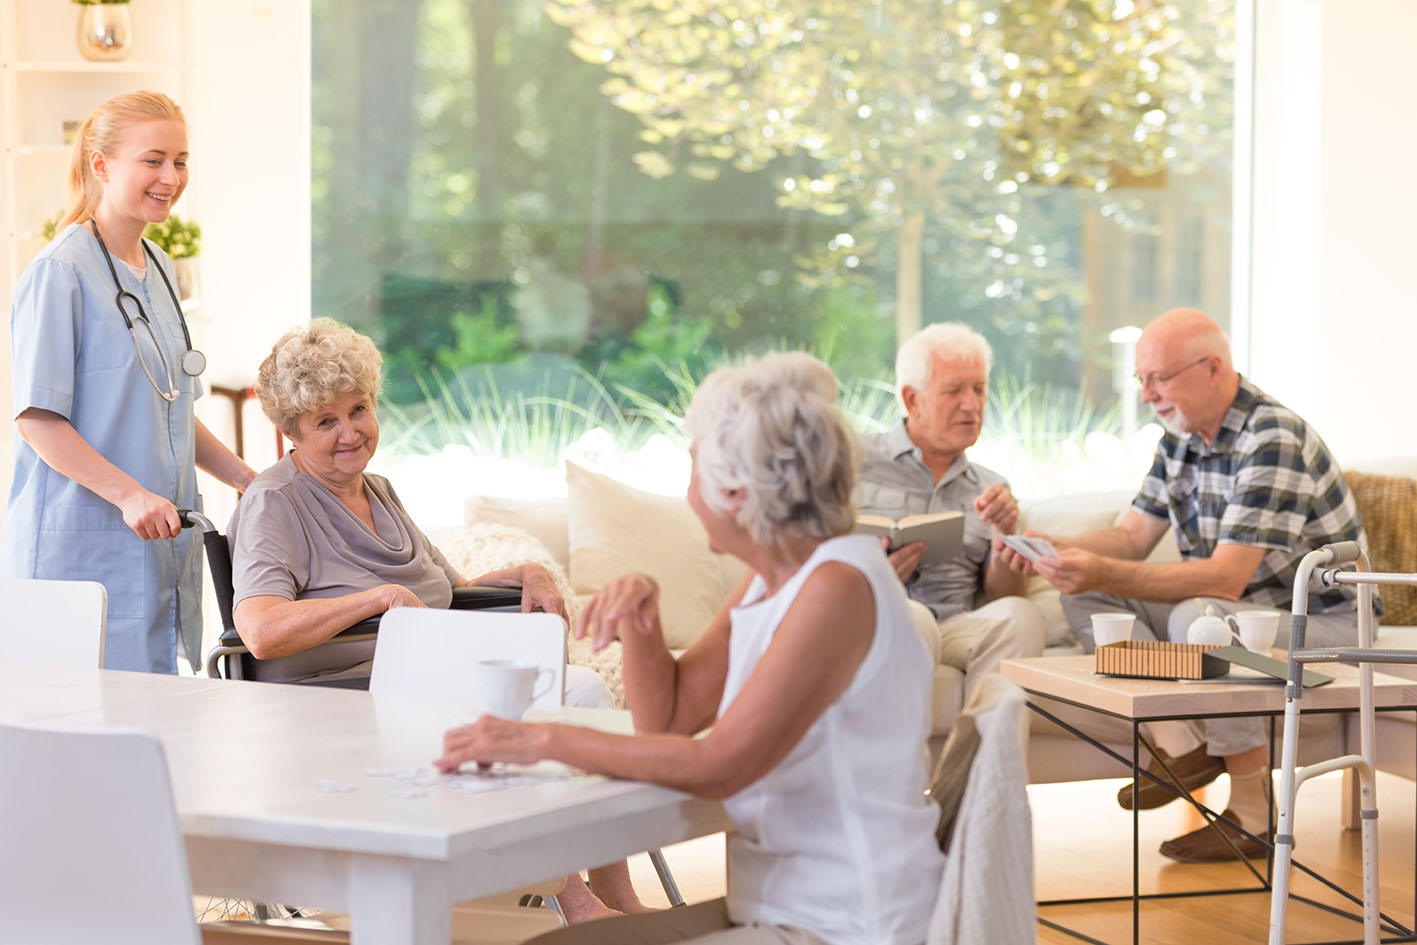 Assisted Living Three Times Less Likely to Get Bad Reviews